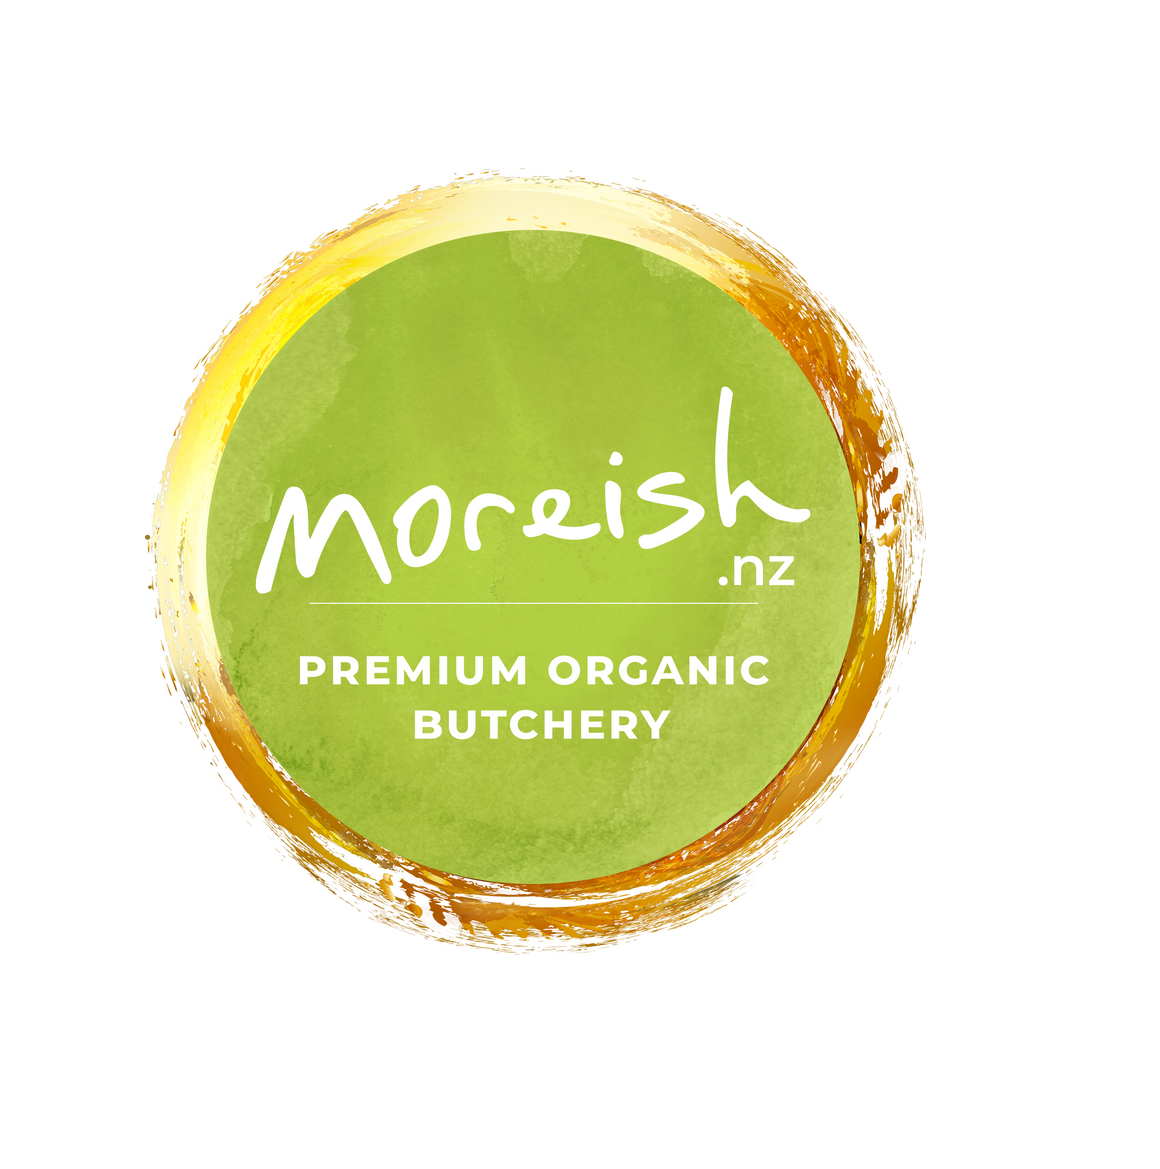 Moreish organic online butchery nz